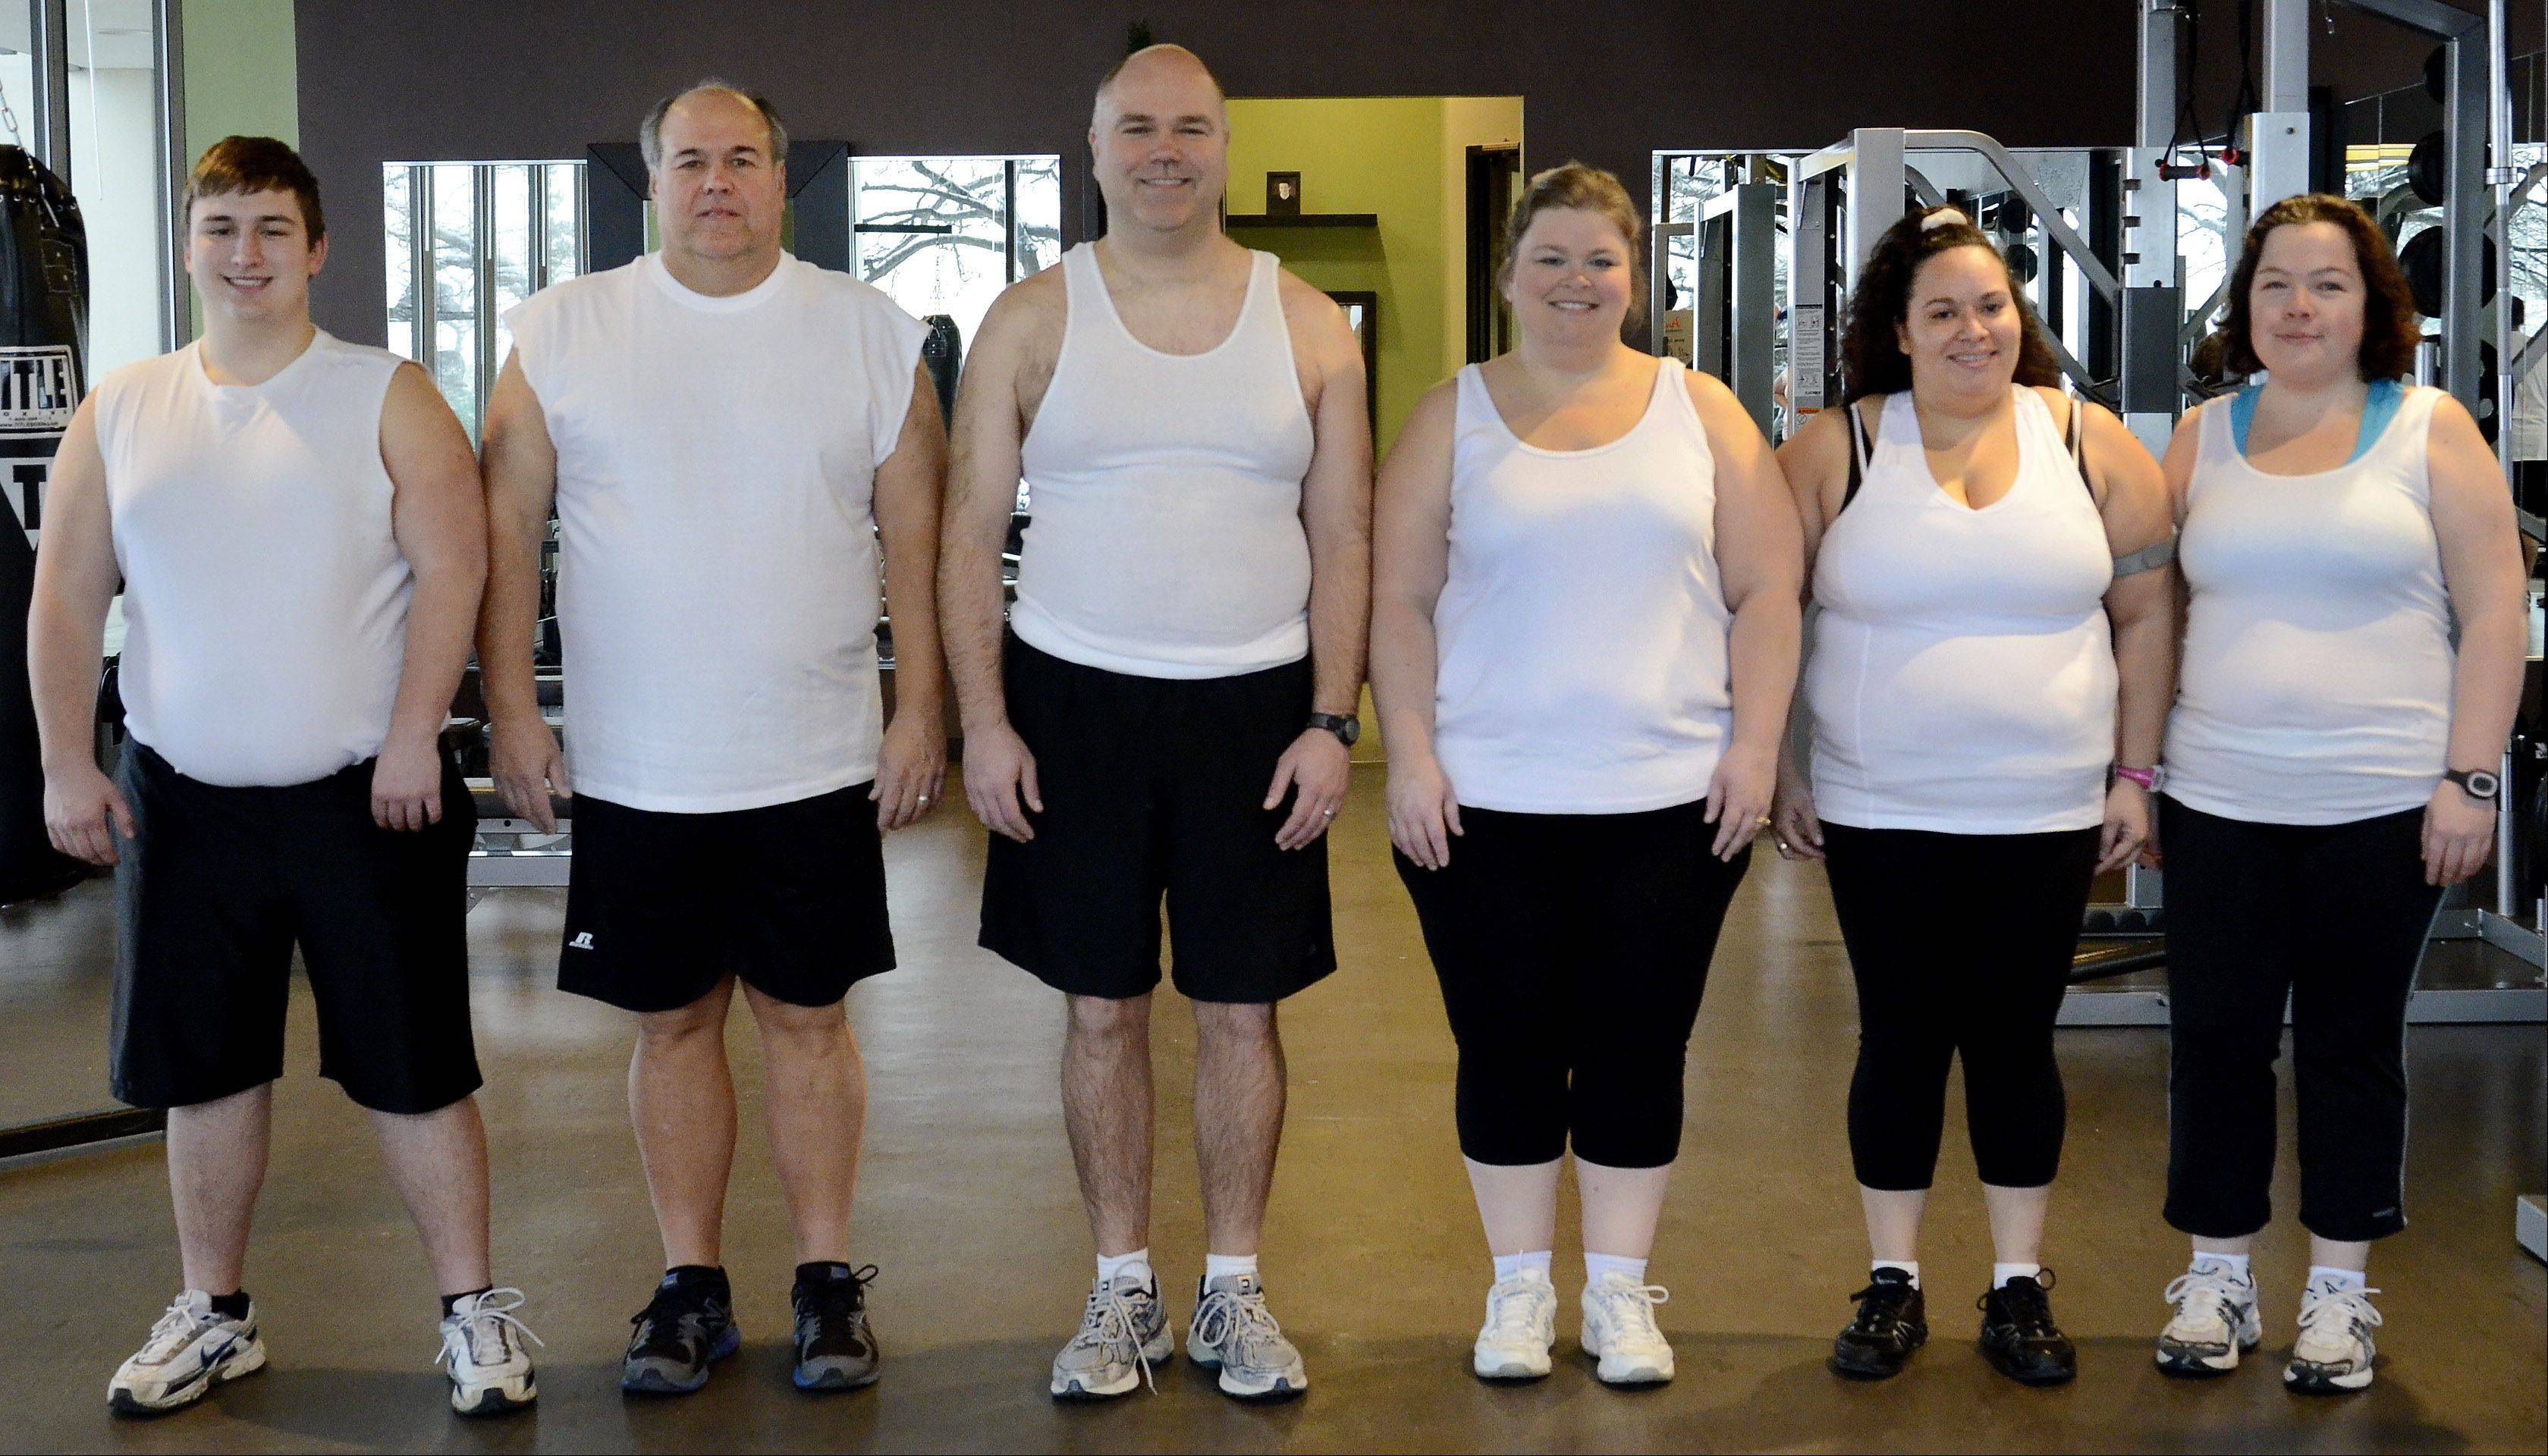 Fittest Loser challenge starts for 6 Daily Herald readers